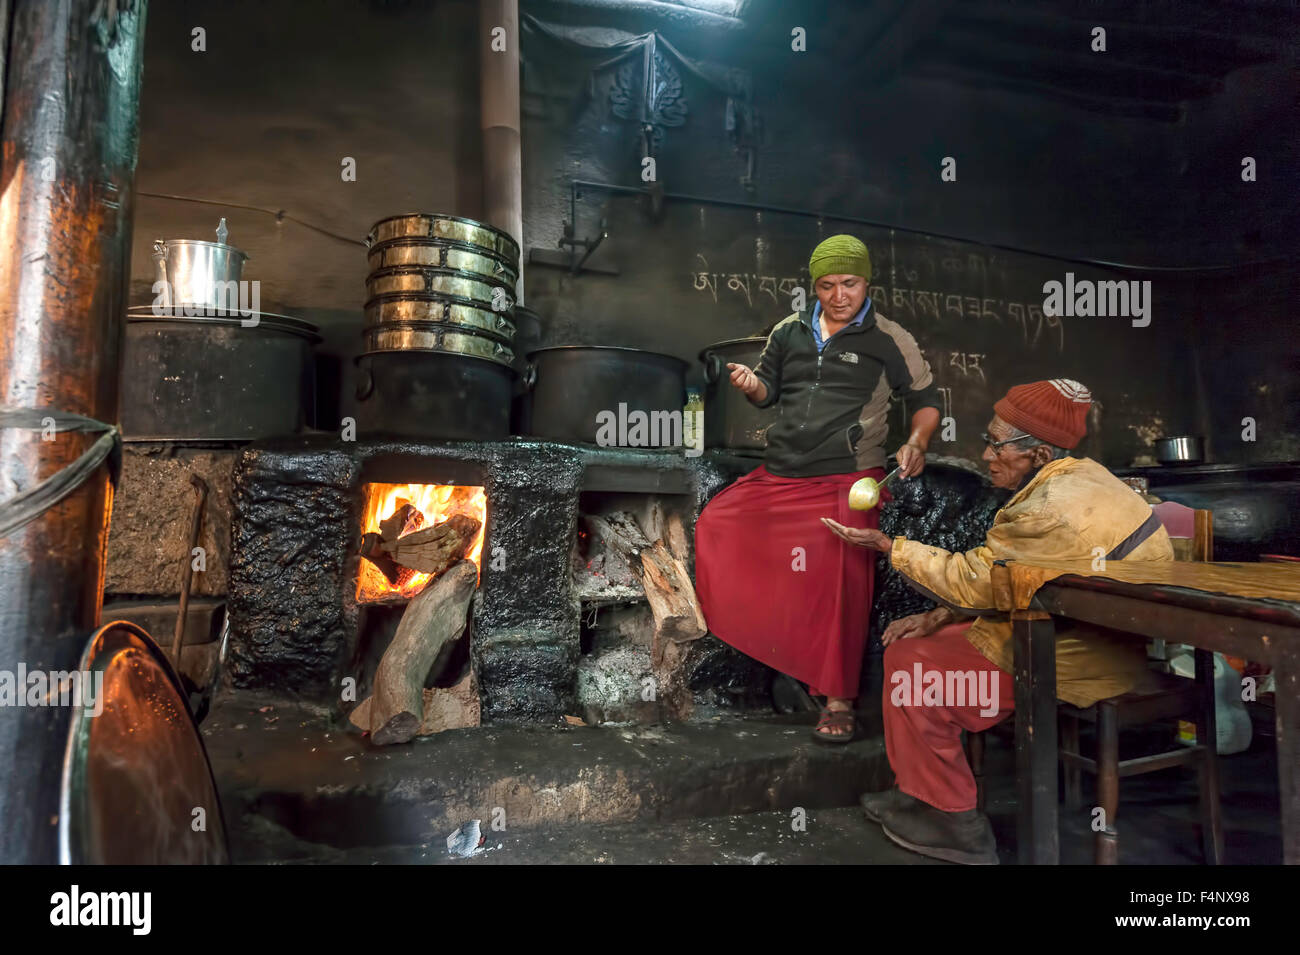 Old Monk is sitting in kitchen next to the fire and cook is serving him food - Stock Image